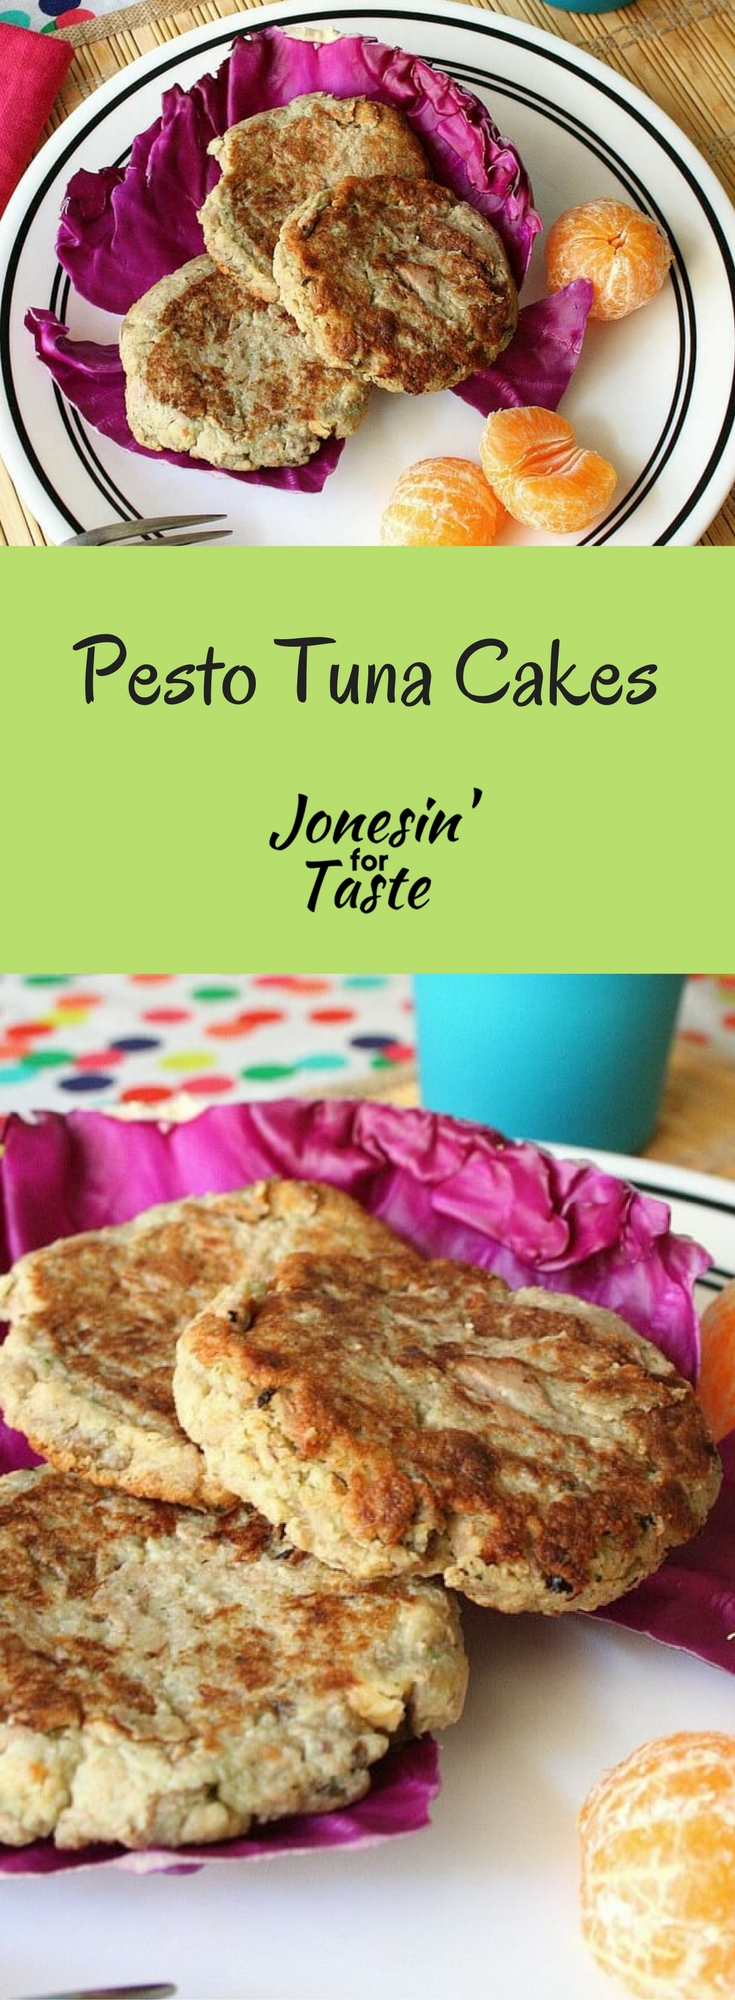 Easy Pesto Tuna Cakes are an inexpensive dish to prepare using leftover mashed potatoes andpesto for a quick weeknight meal.